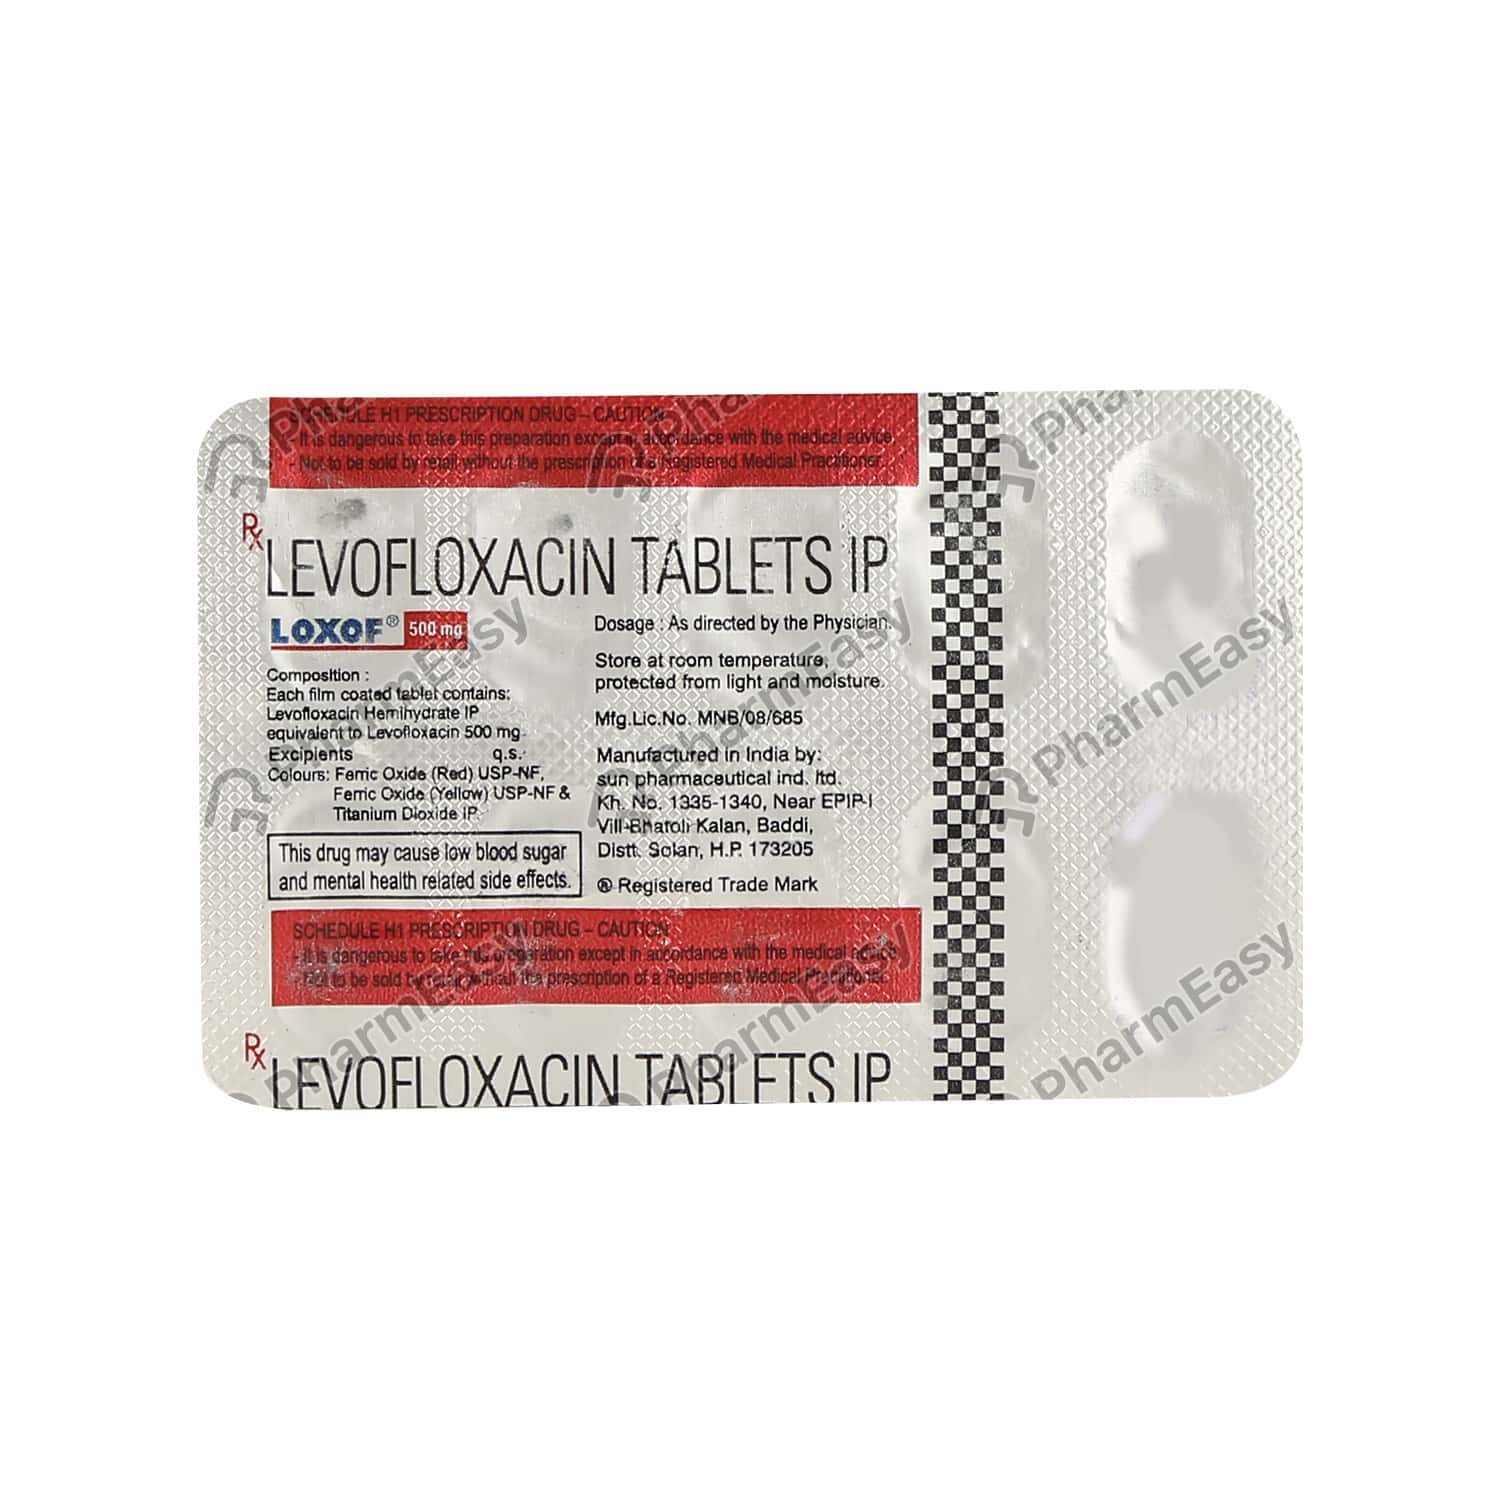 Loxof 500mg Strip Of 10 Tablets